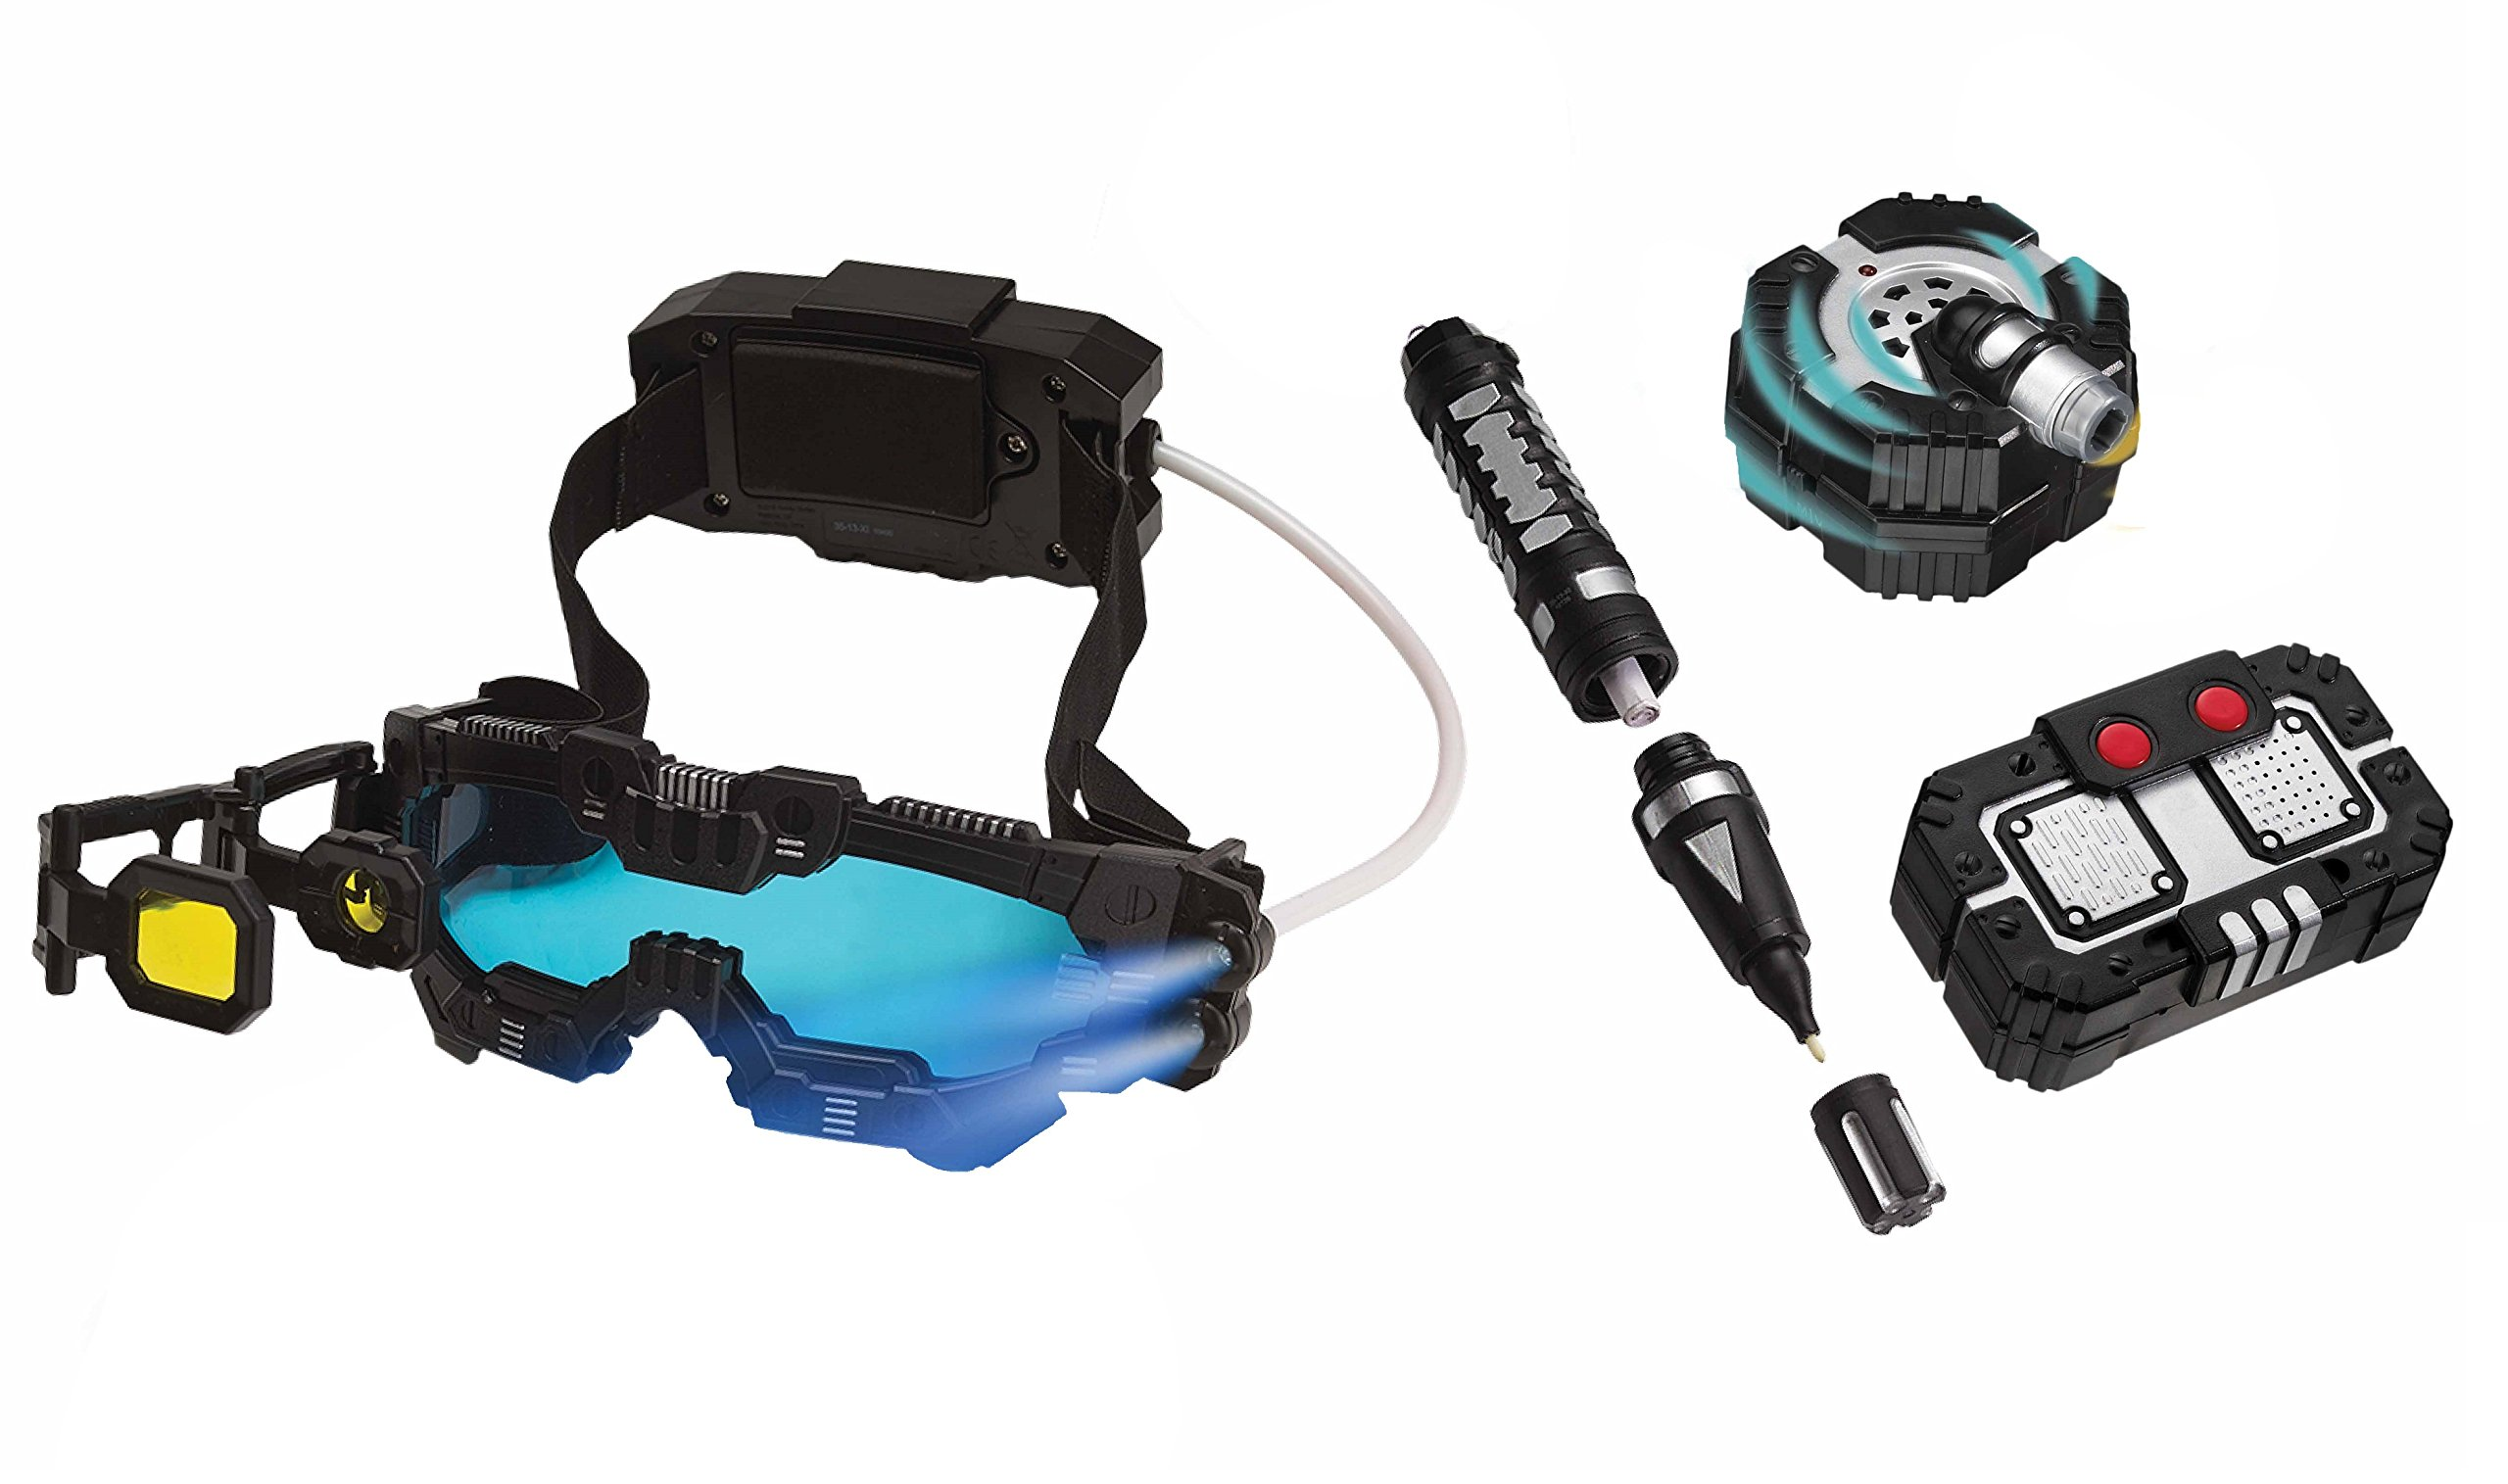 SpyX Night Ranger Set - Includes Night Mission Goggles / Motion Alarm / Voice Disguiser / Invisible Ink Pen.